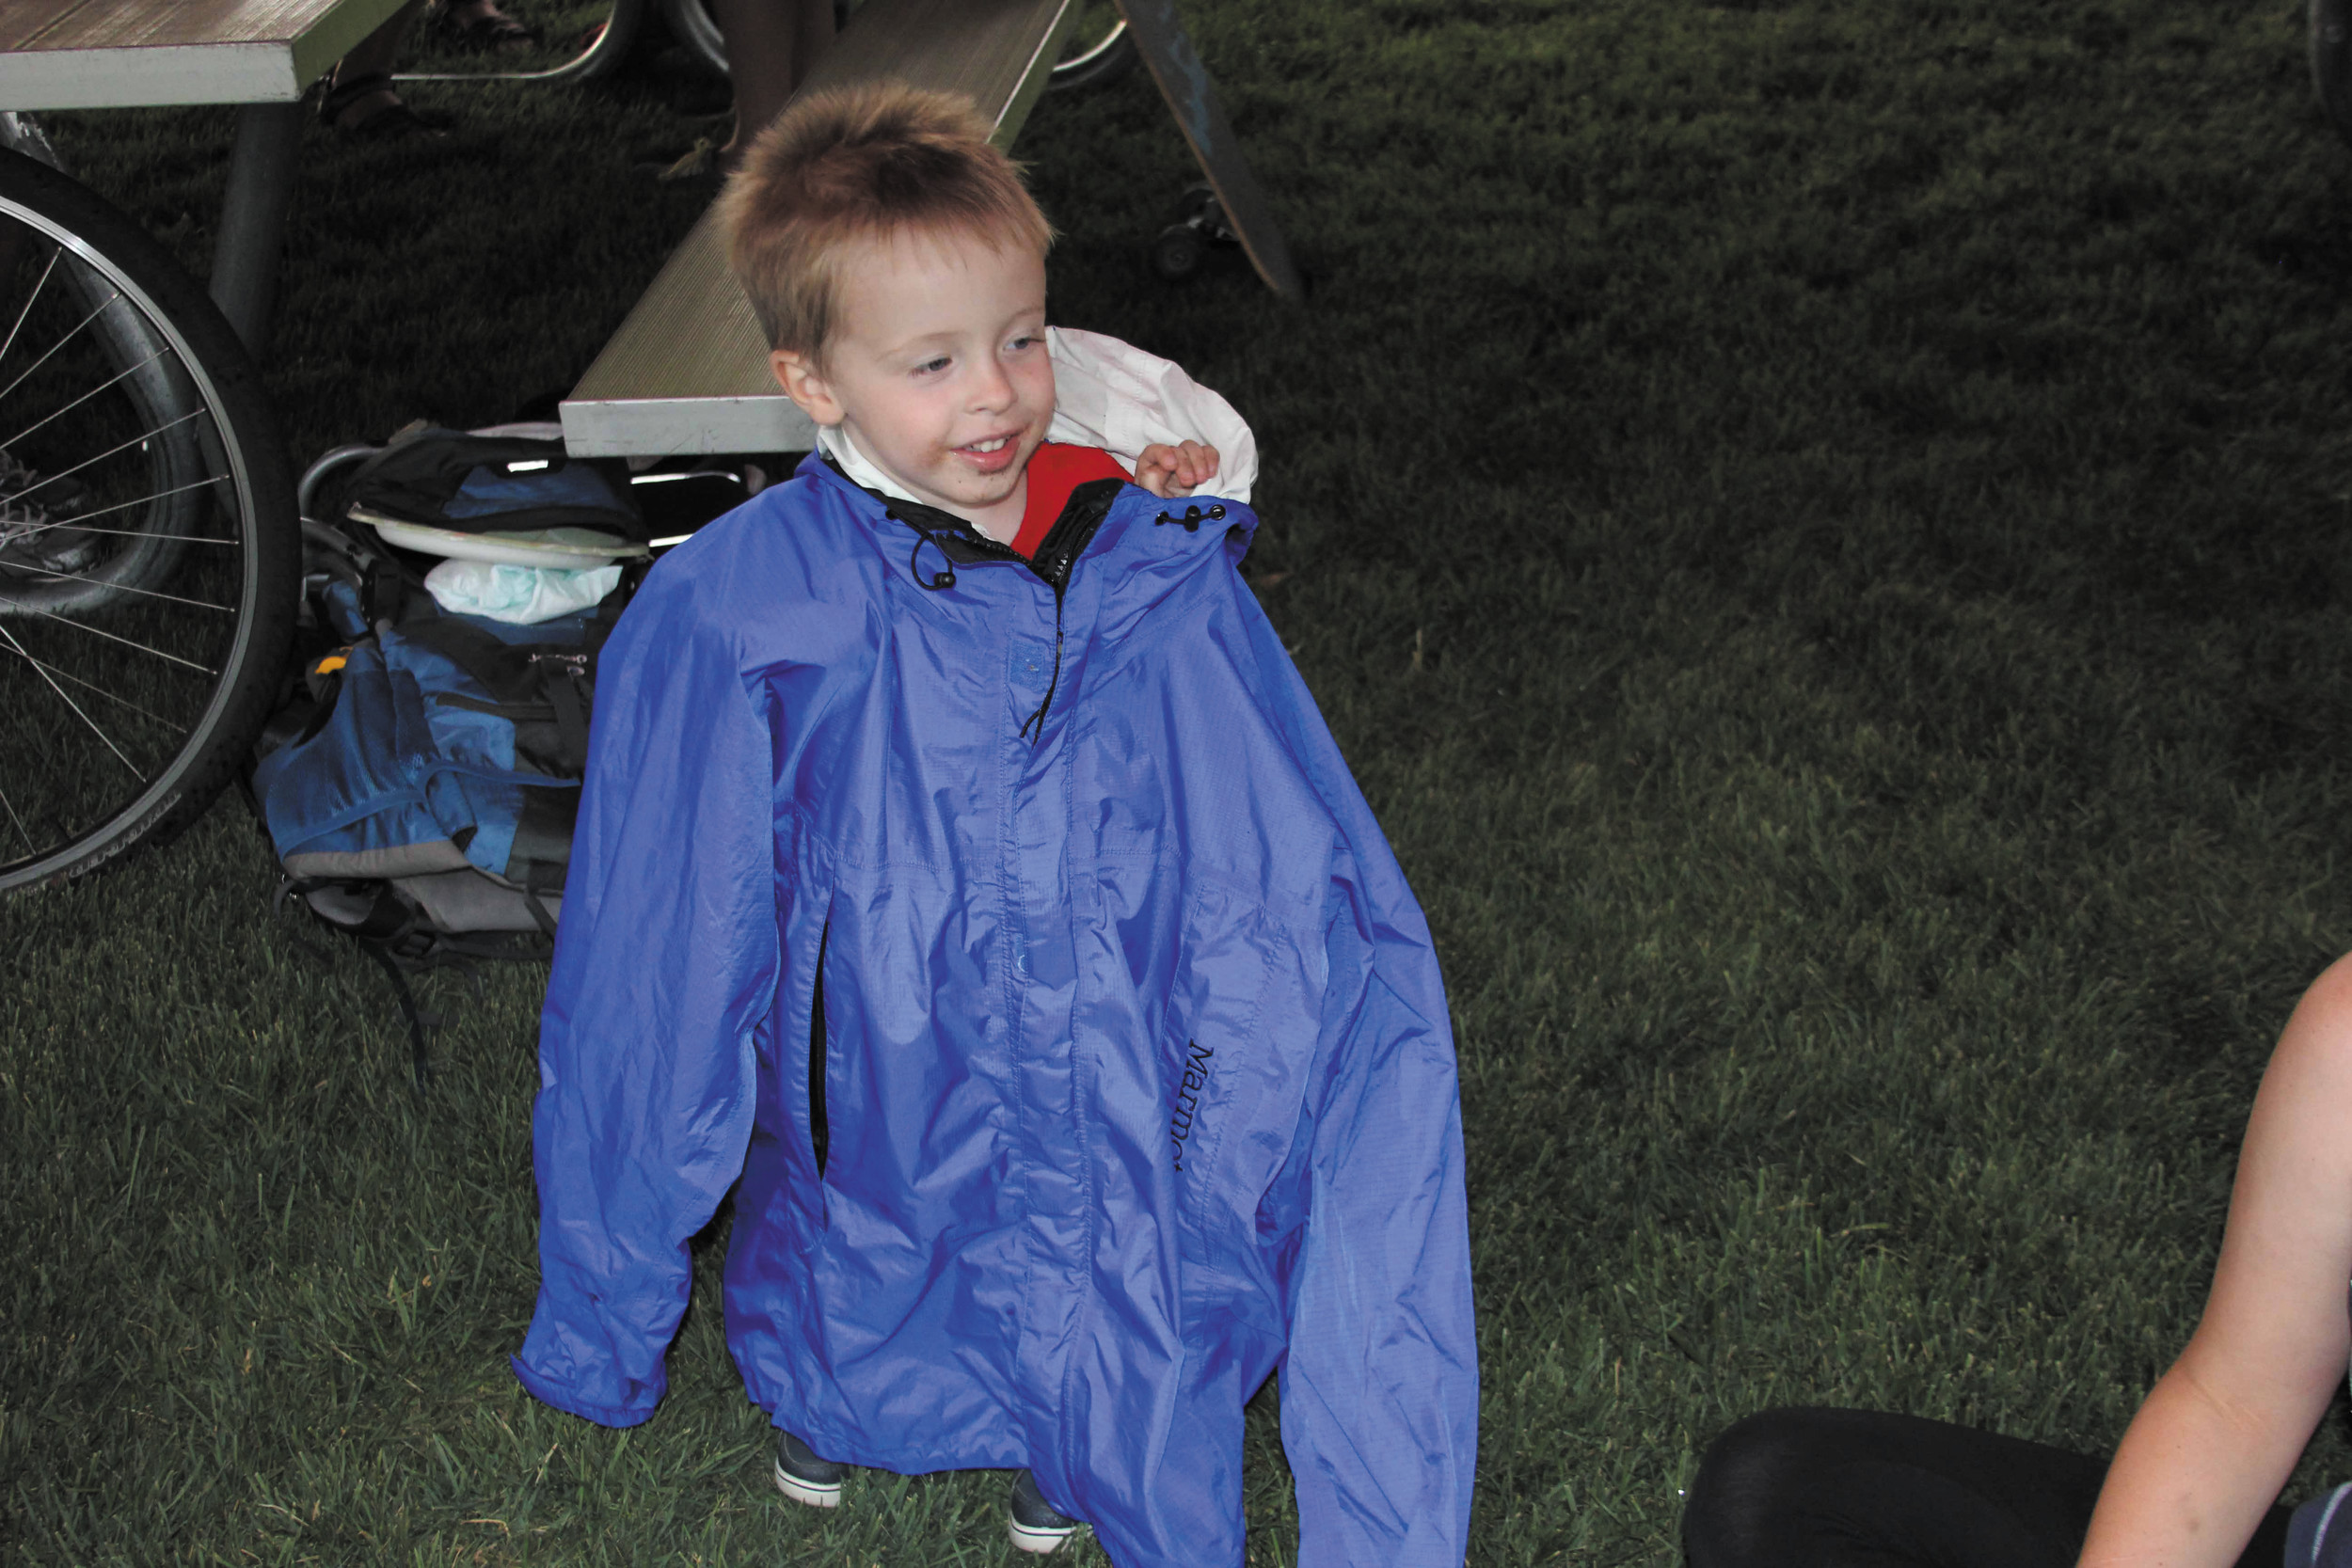 Sebastian Hutchison is snug and warm wrapped up in his dad's jacket when the July 4 rainstorms and wind made it a bit chilly at the July 4 Family Fun and Fireworks festivities at Cornerstone Park. The rain came and went, the weather turned warmer and the event went on as planned.